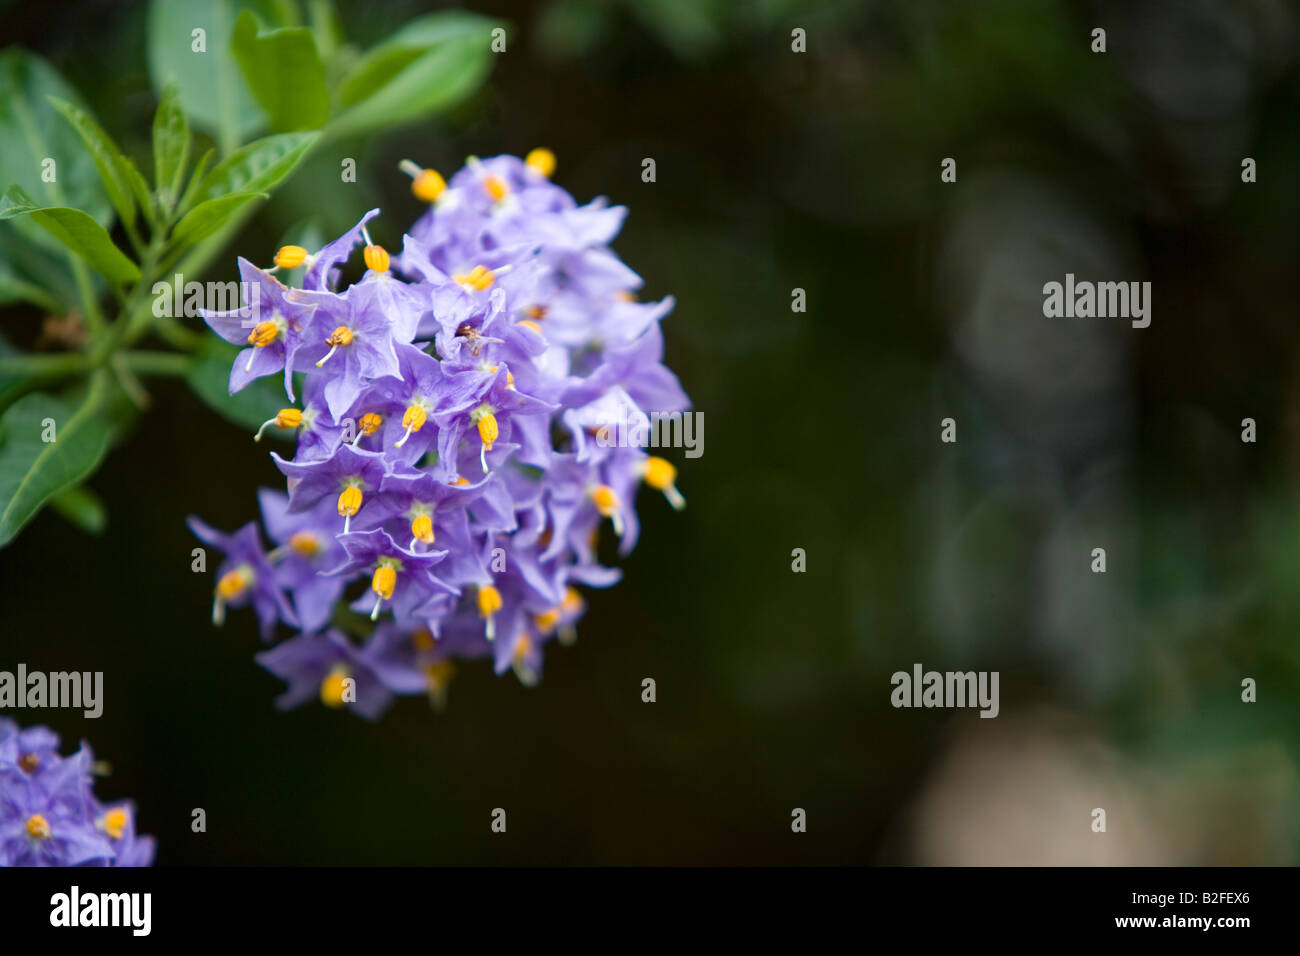 purple flowers, related to the potato - Stock Image